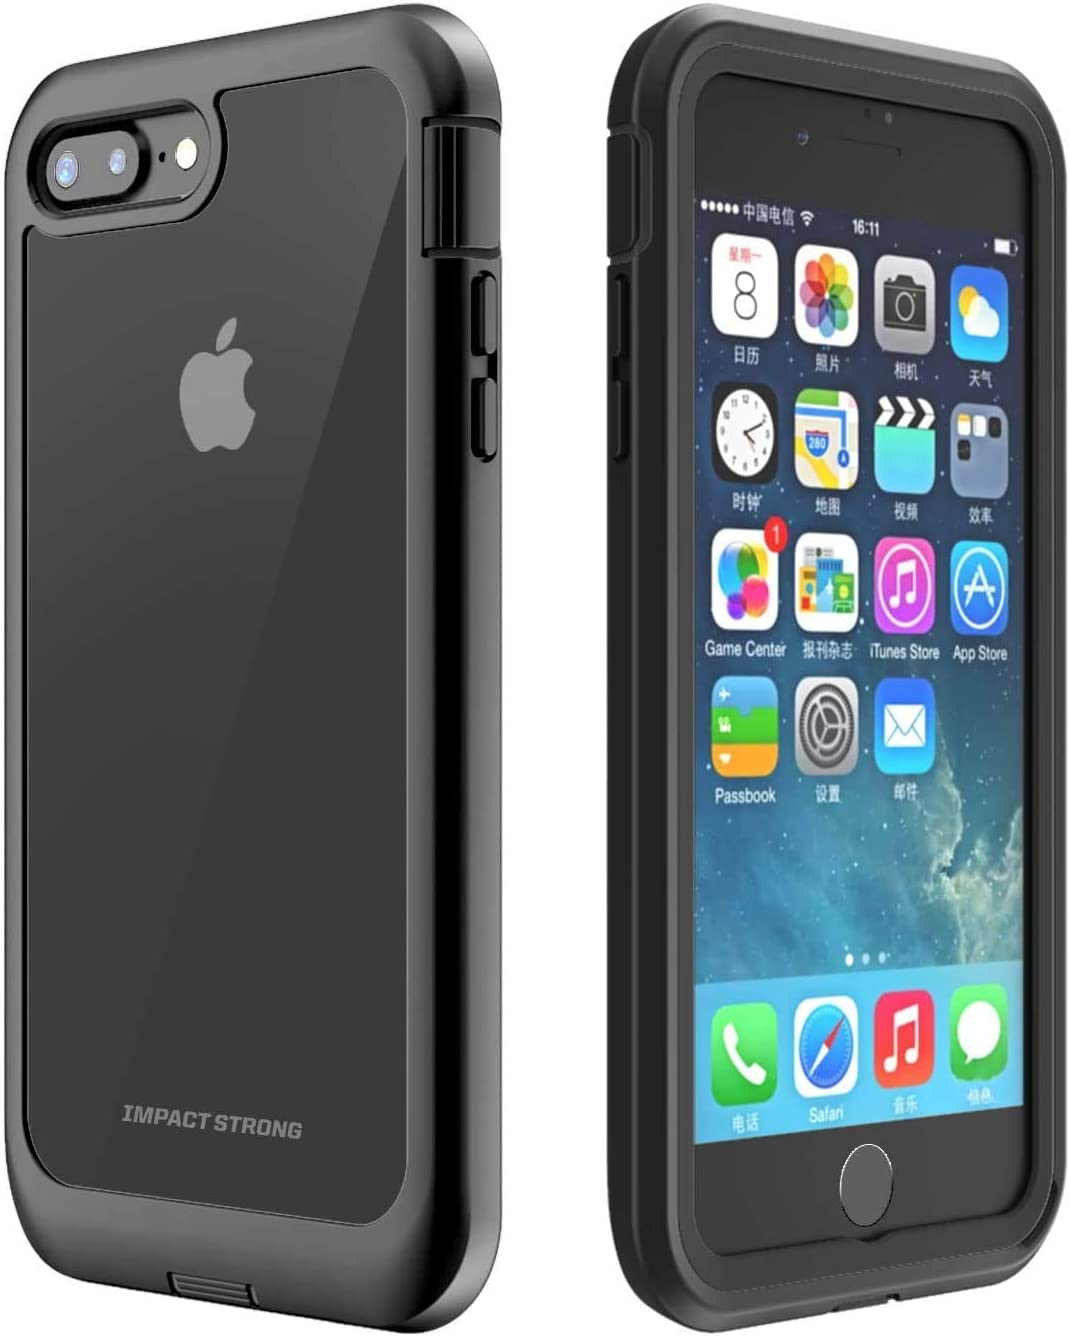 ImpactStrong iPhone 7 Plus/iPhone 8 Plus Case, Ultra Protective Clear Case with Built-in Clear Screen Protector Full Body Transparent Cover for iPhone 7 Plus/iPhone 8 Plus (Clear)